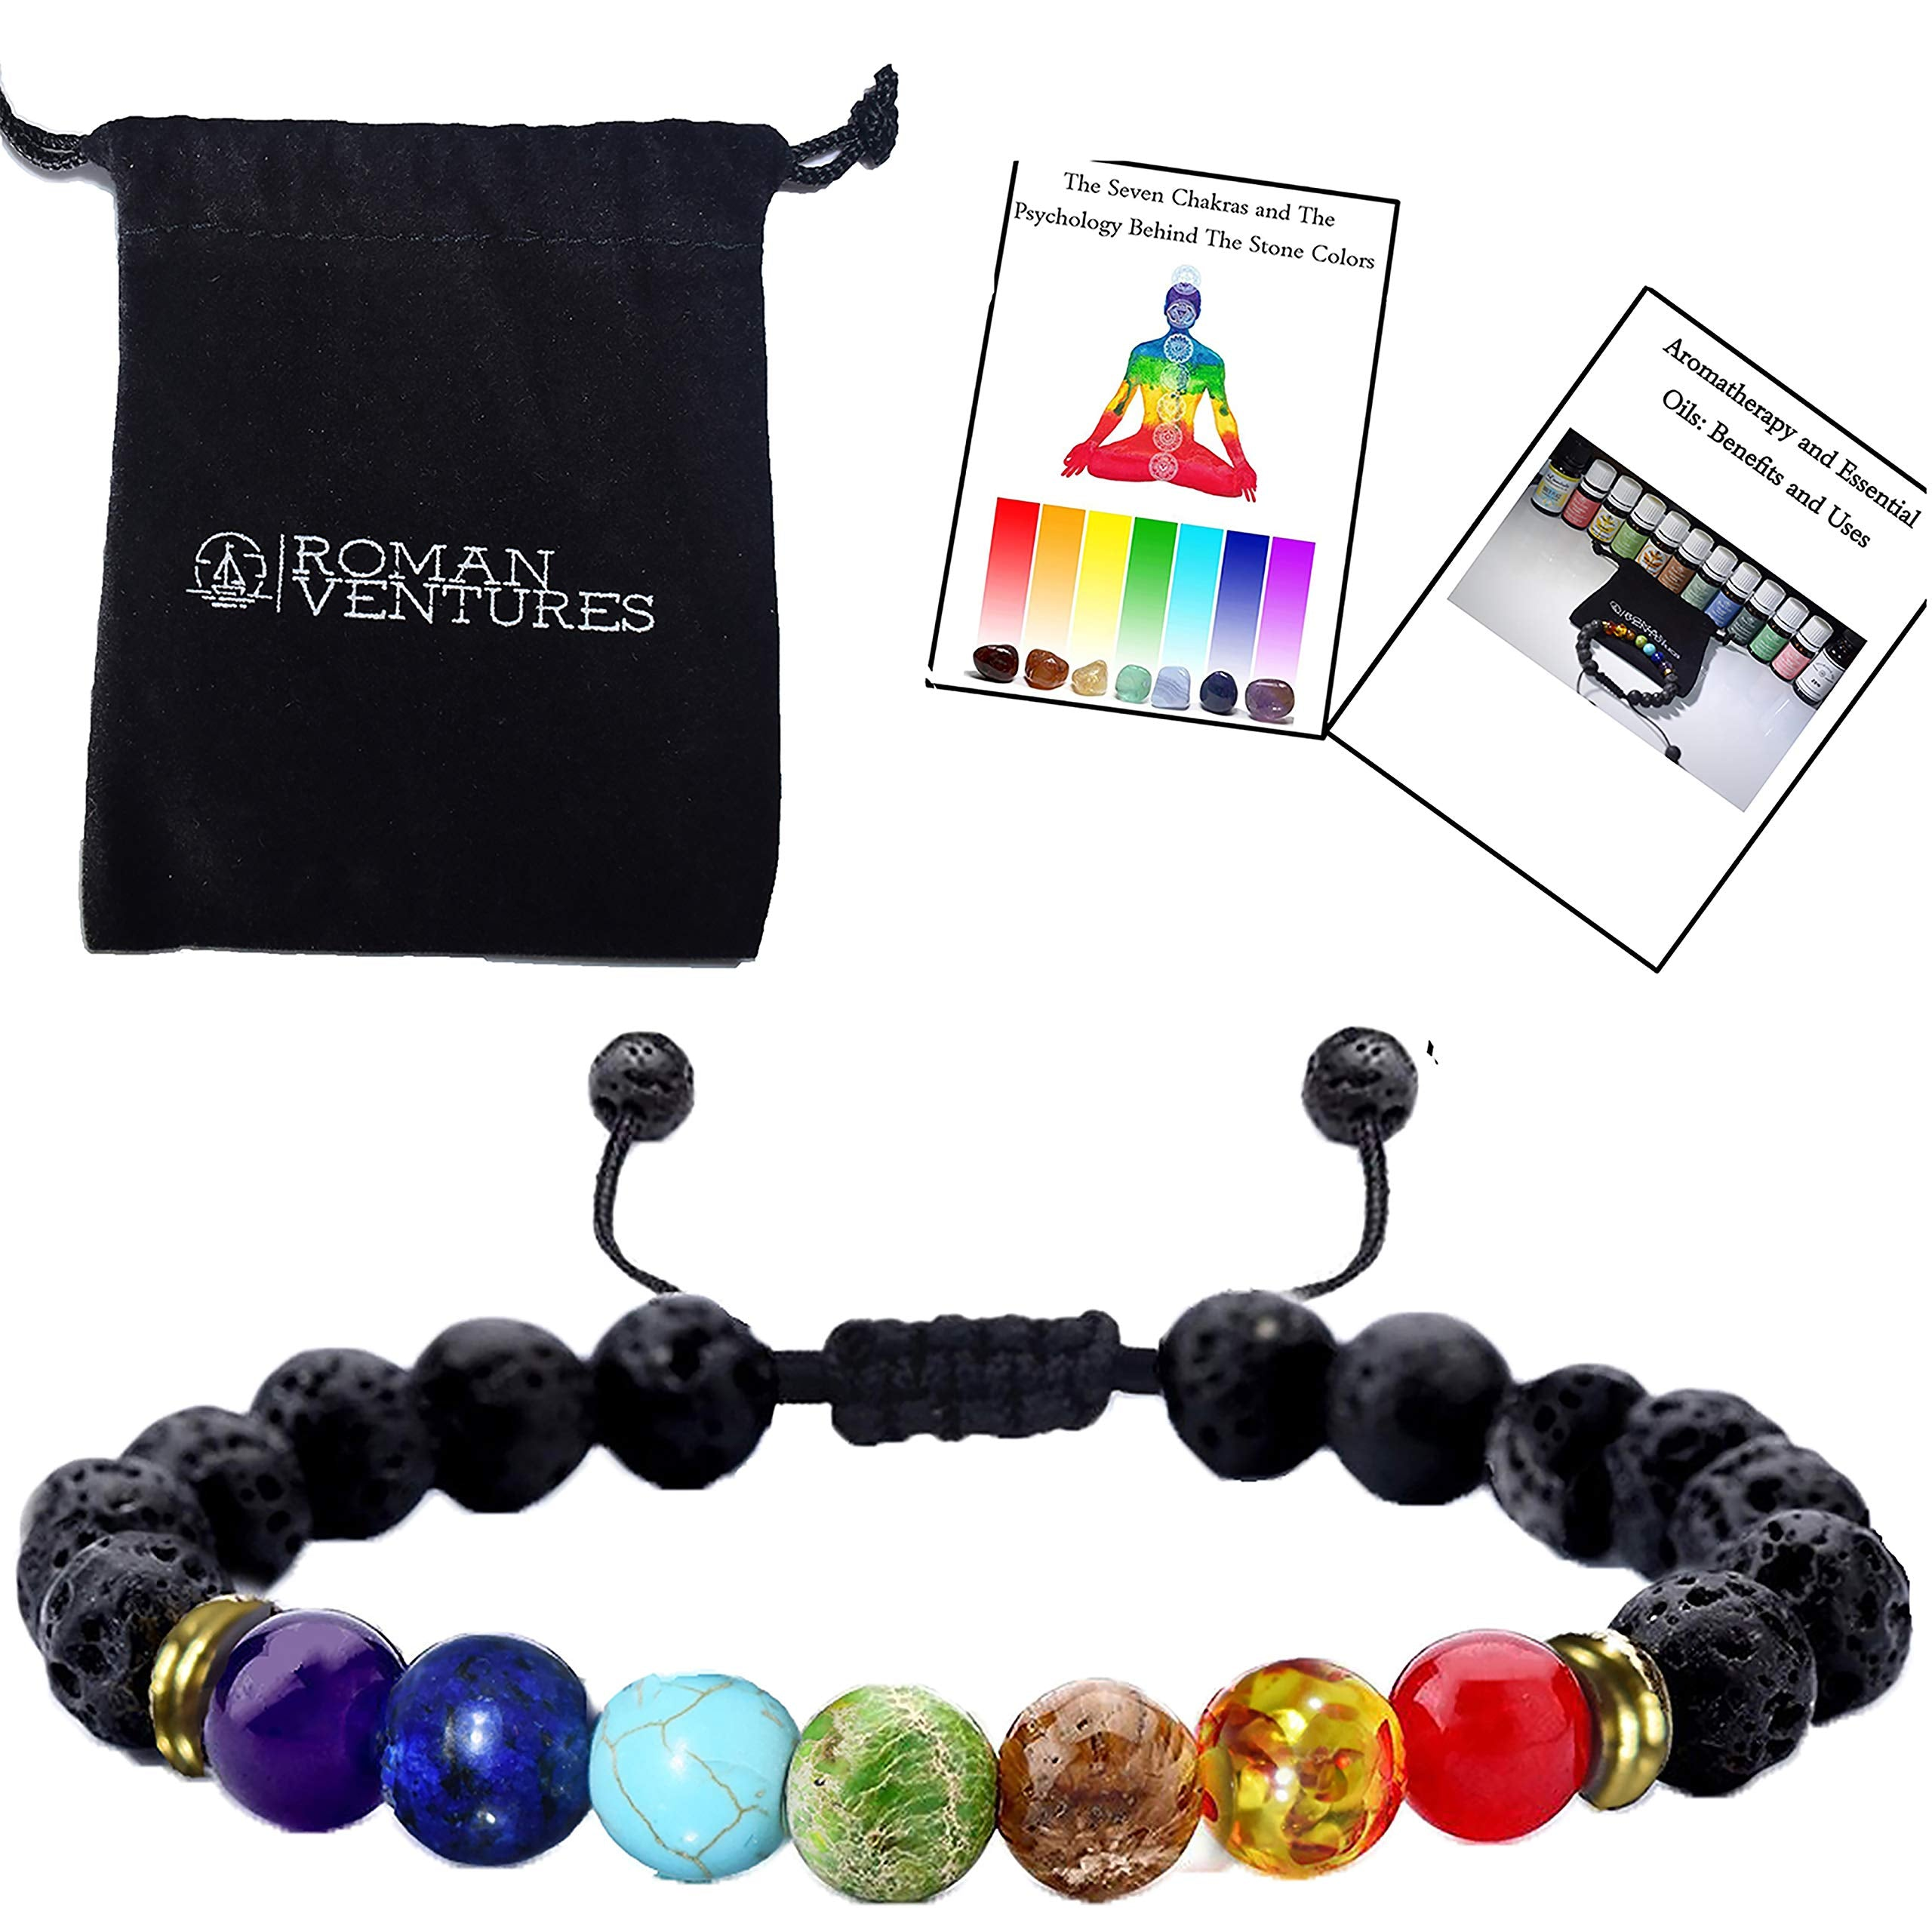 Jewelry & Watches Aromatherapy Lava Stones Bracelet Chakra Lava Stone With 2 Essential Oils